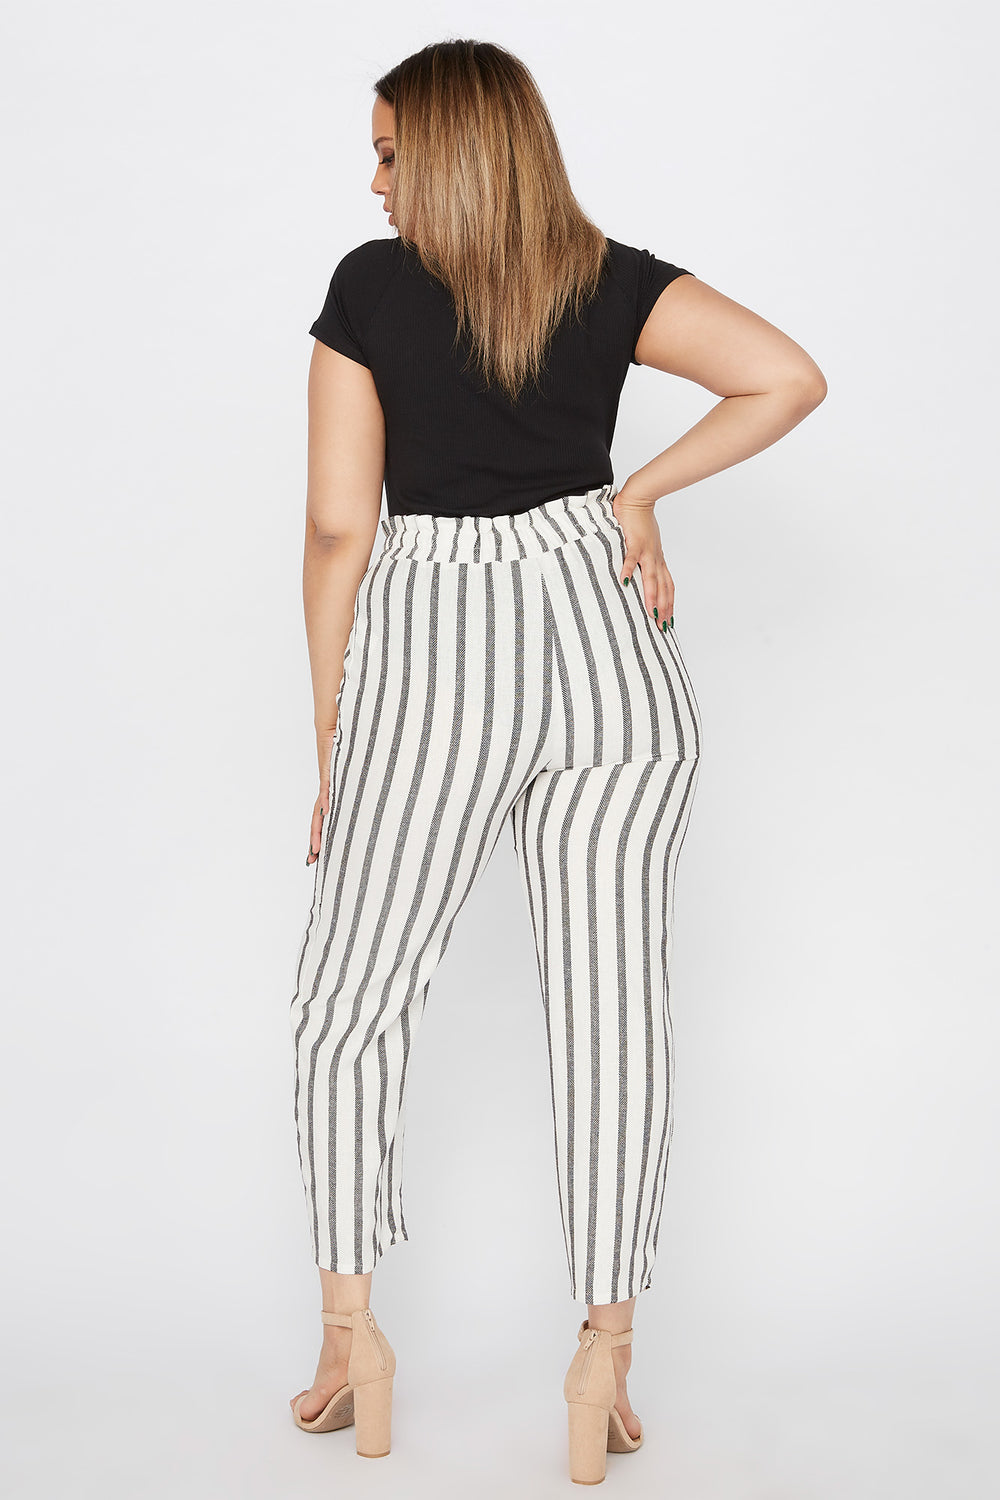 Plus Size Cropped Striped Self Tie Paperbag Linen Pant Off White